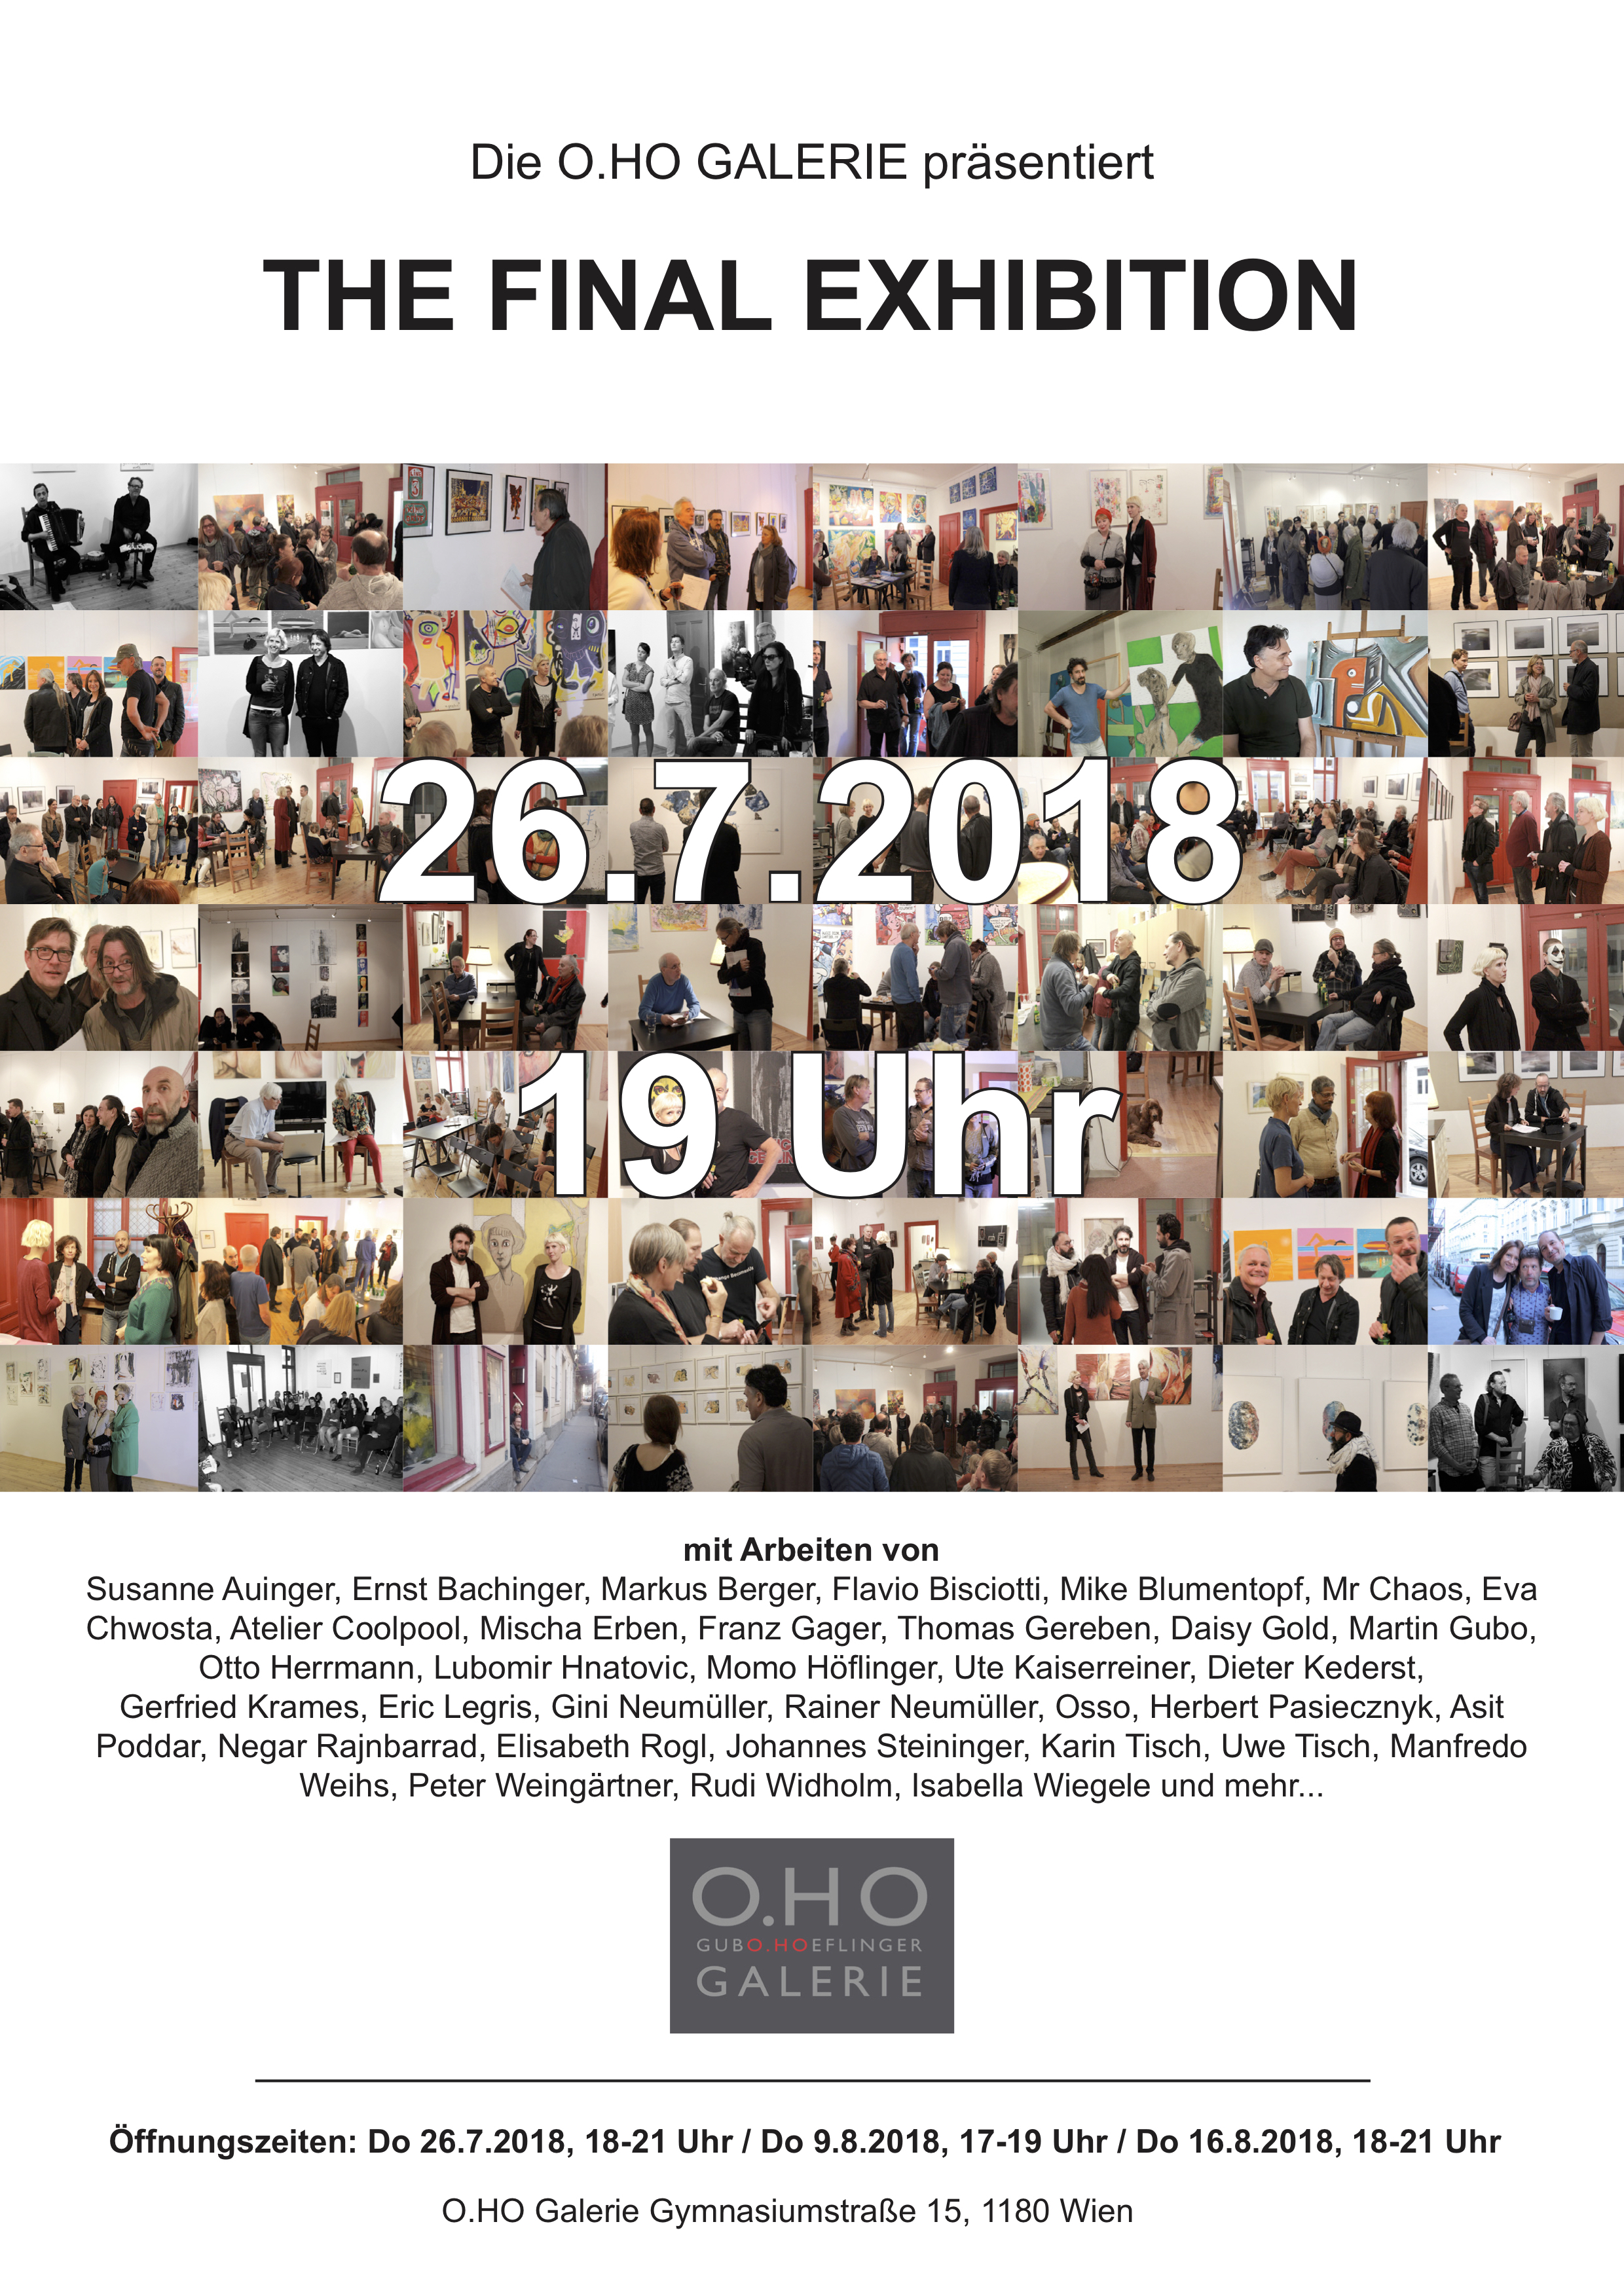 O.HO Gallery - The Final Exhibition, July 2018